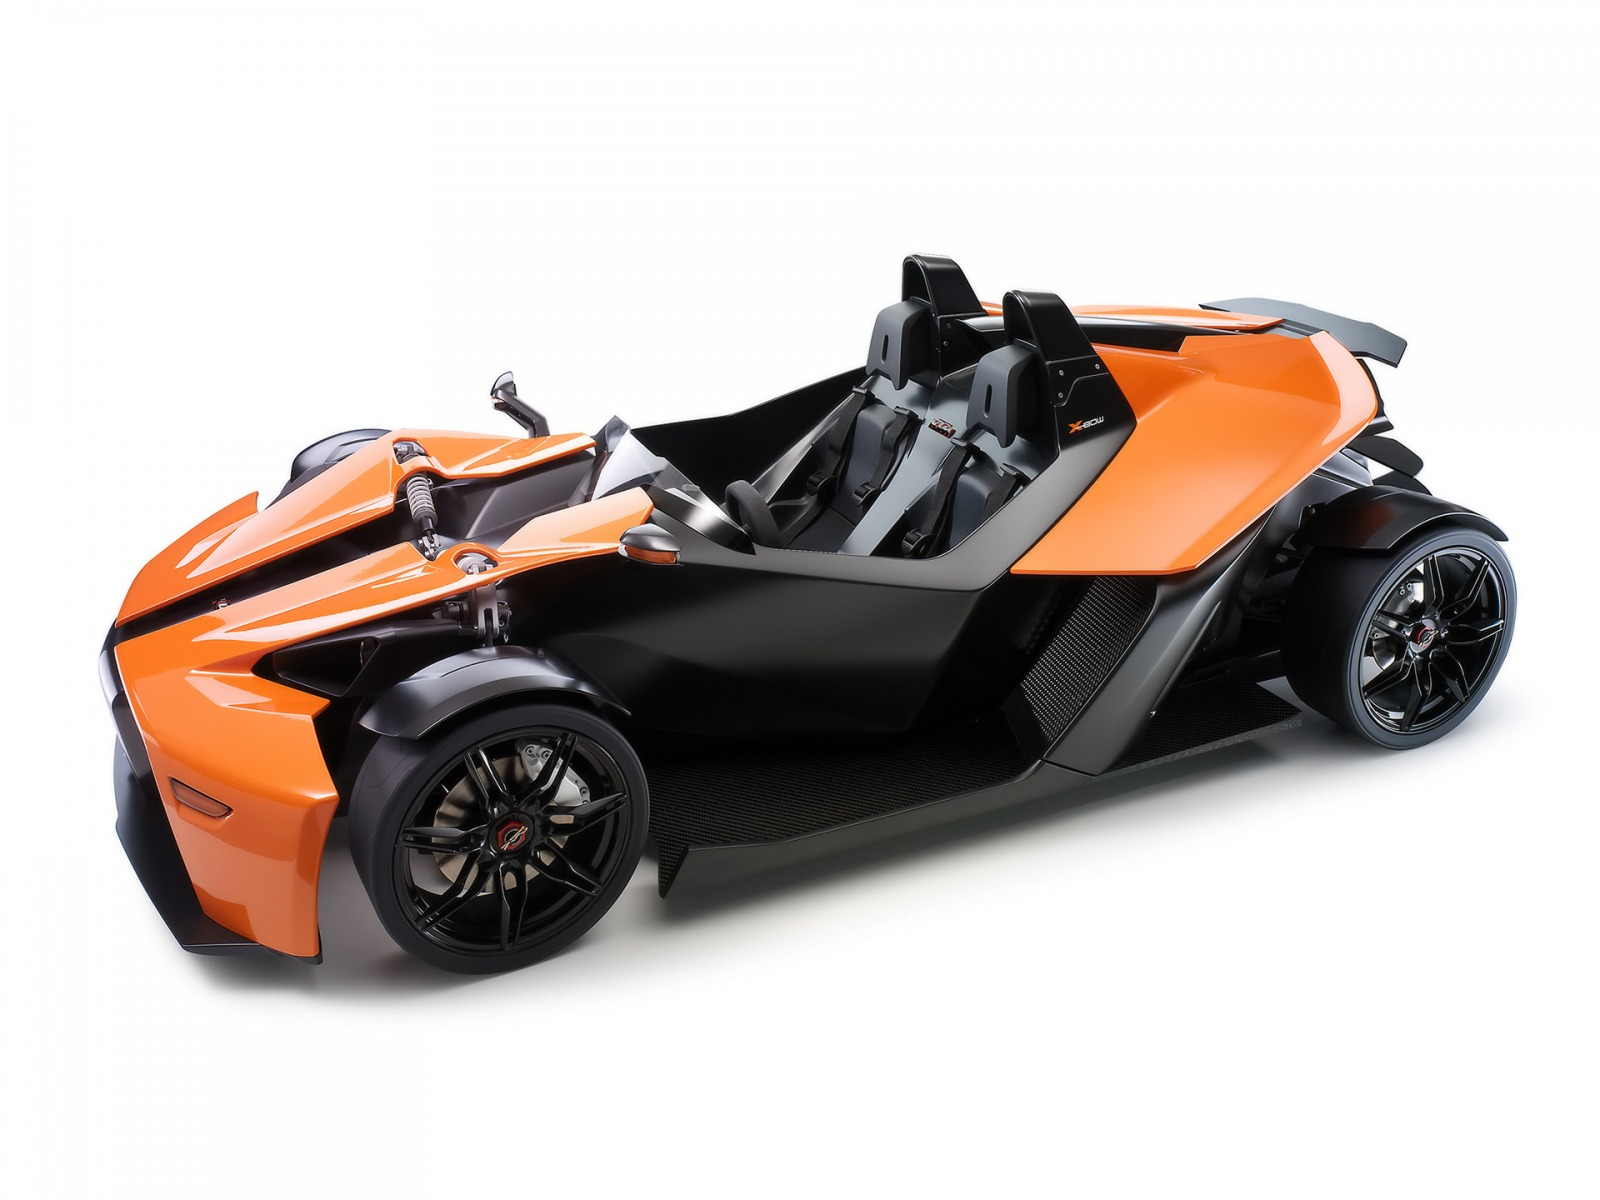 KTM X Bow Wallpaper Concept Cars Wallpapers